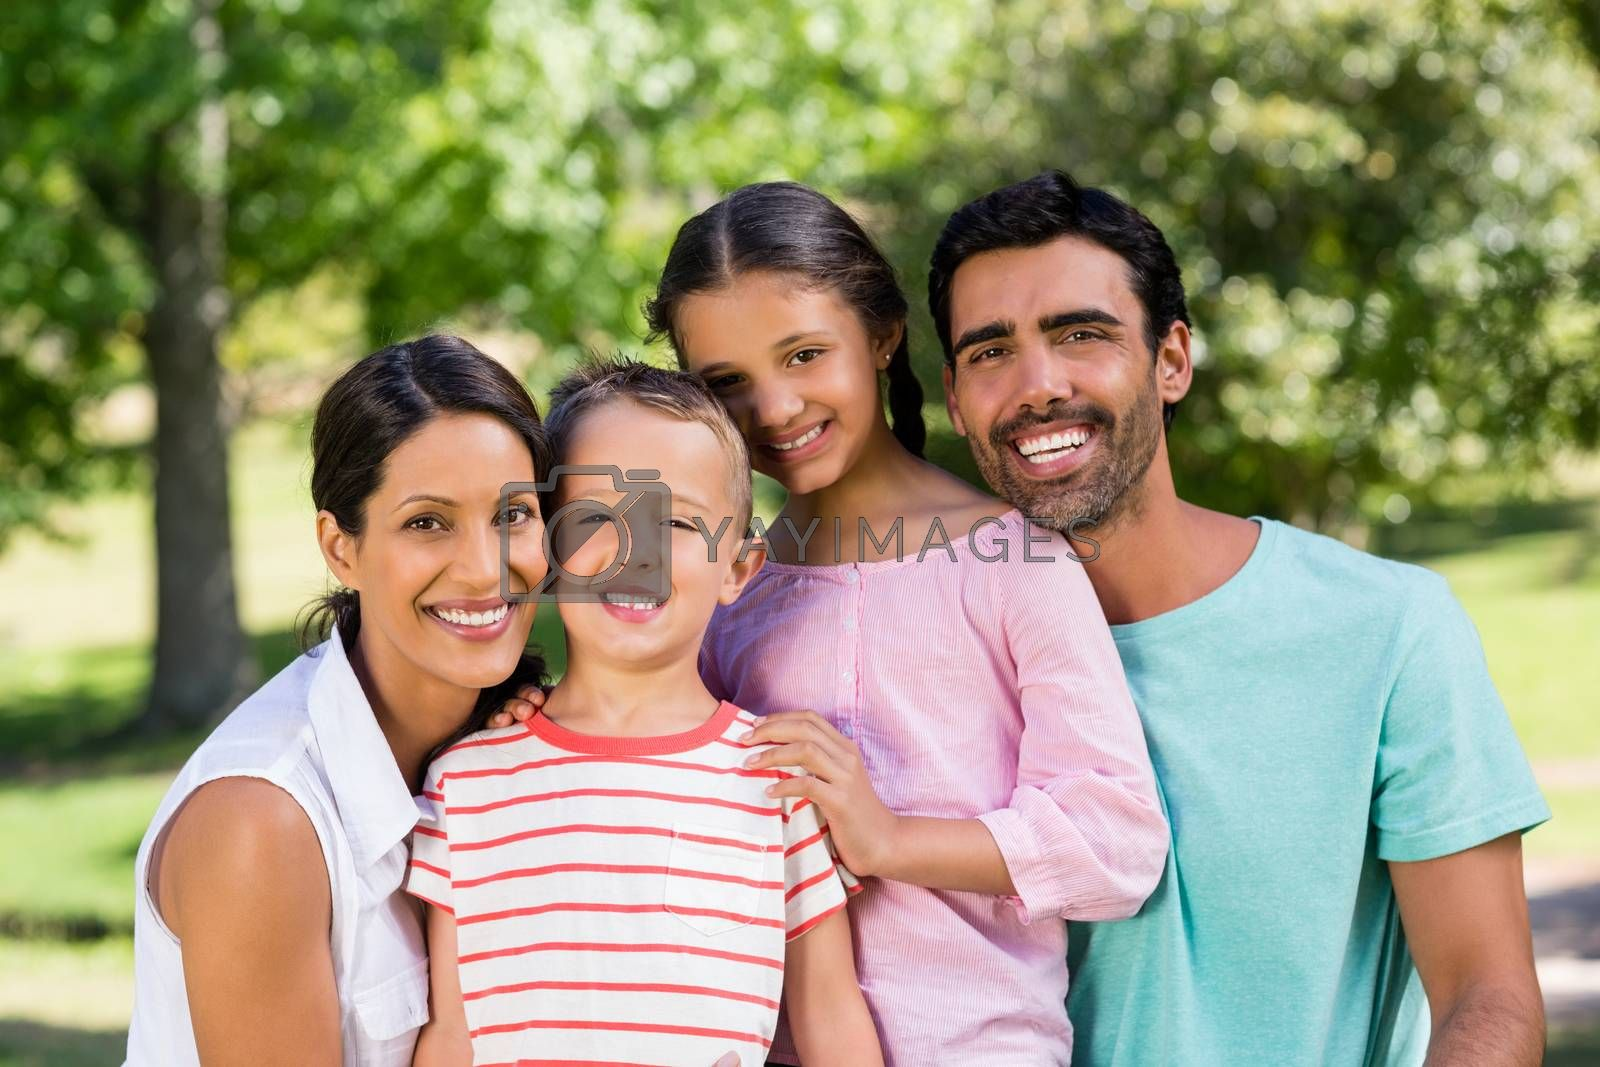 Portrait of happy family in park on a sunny day